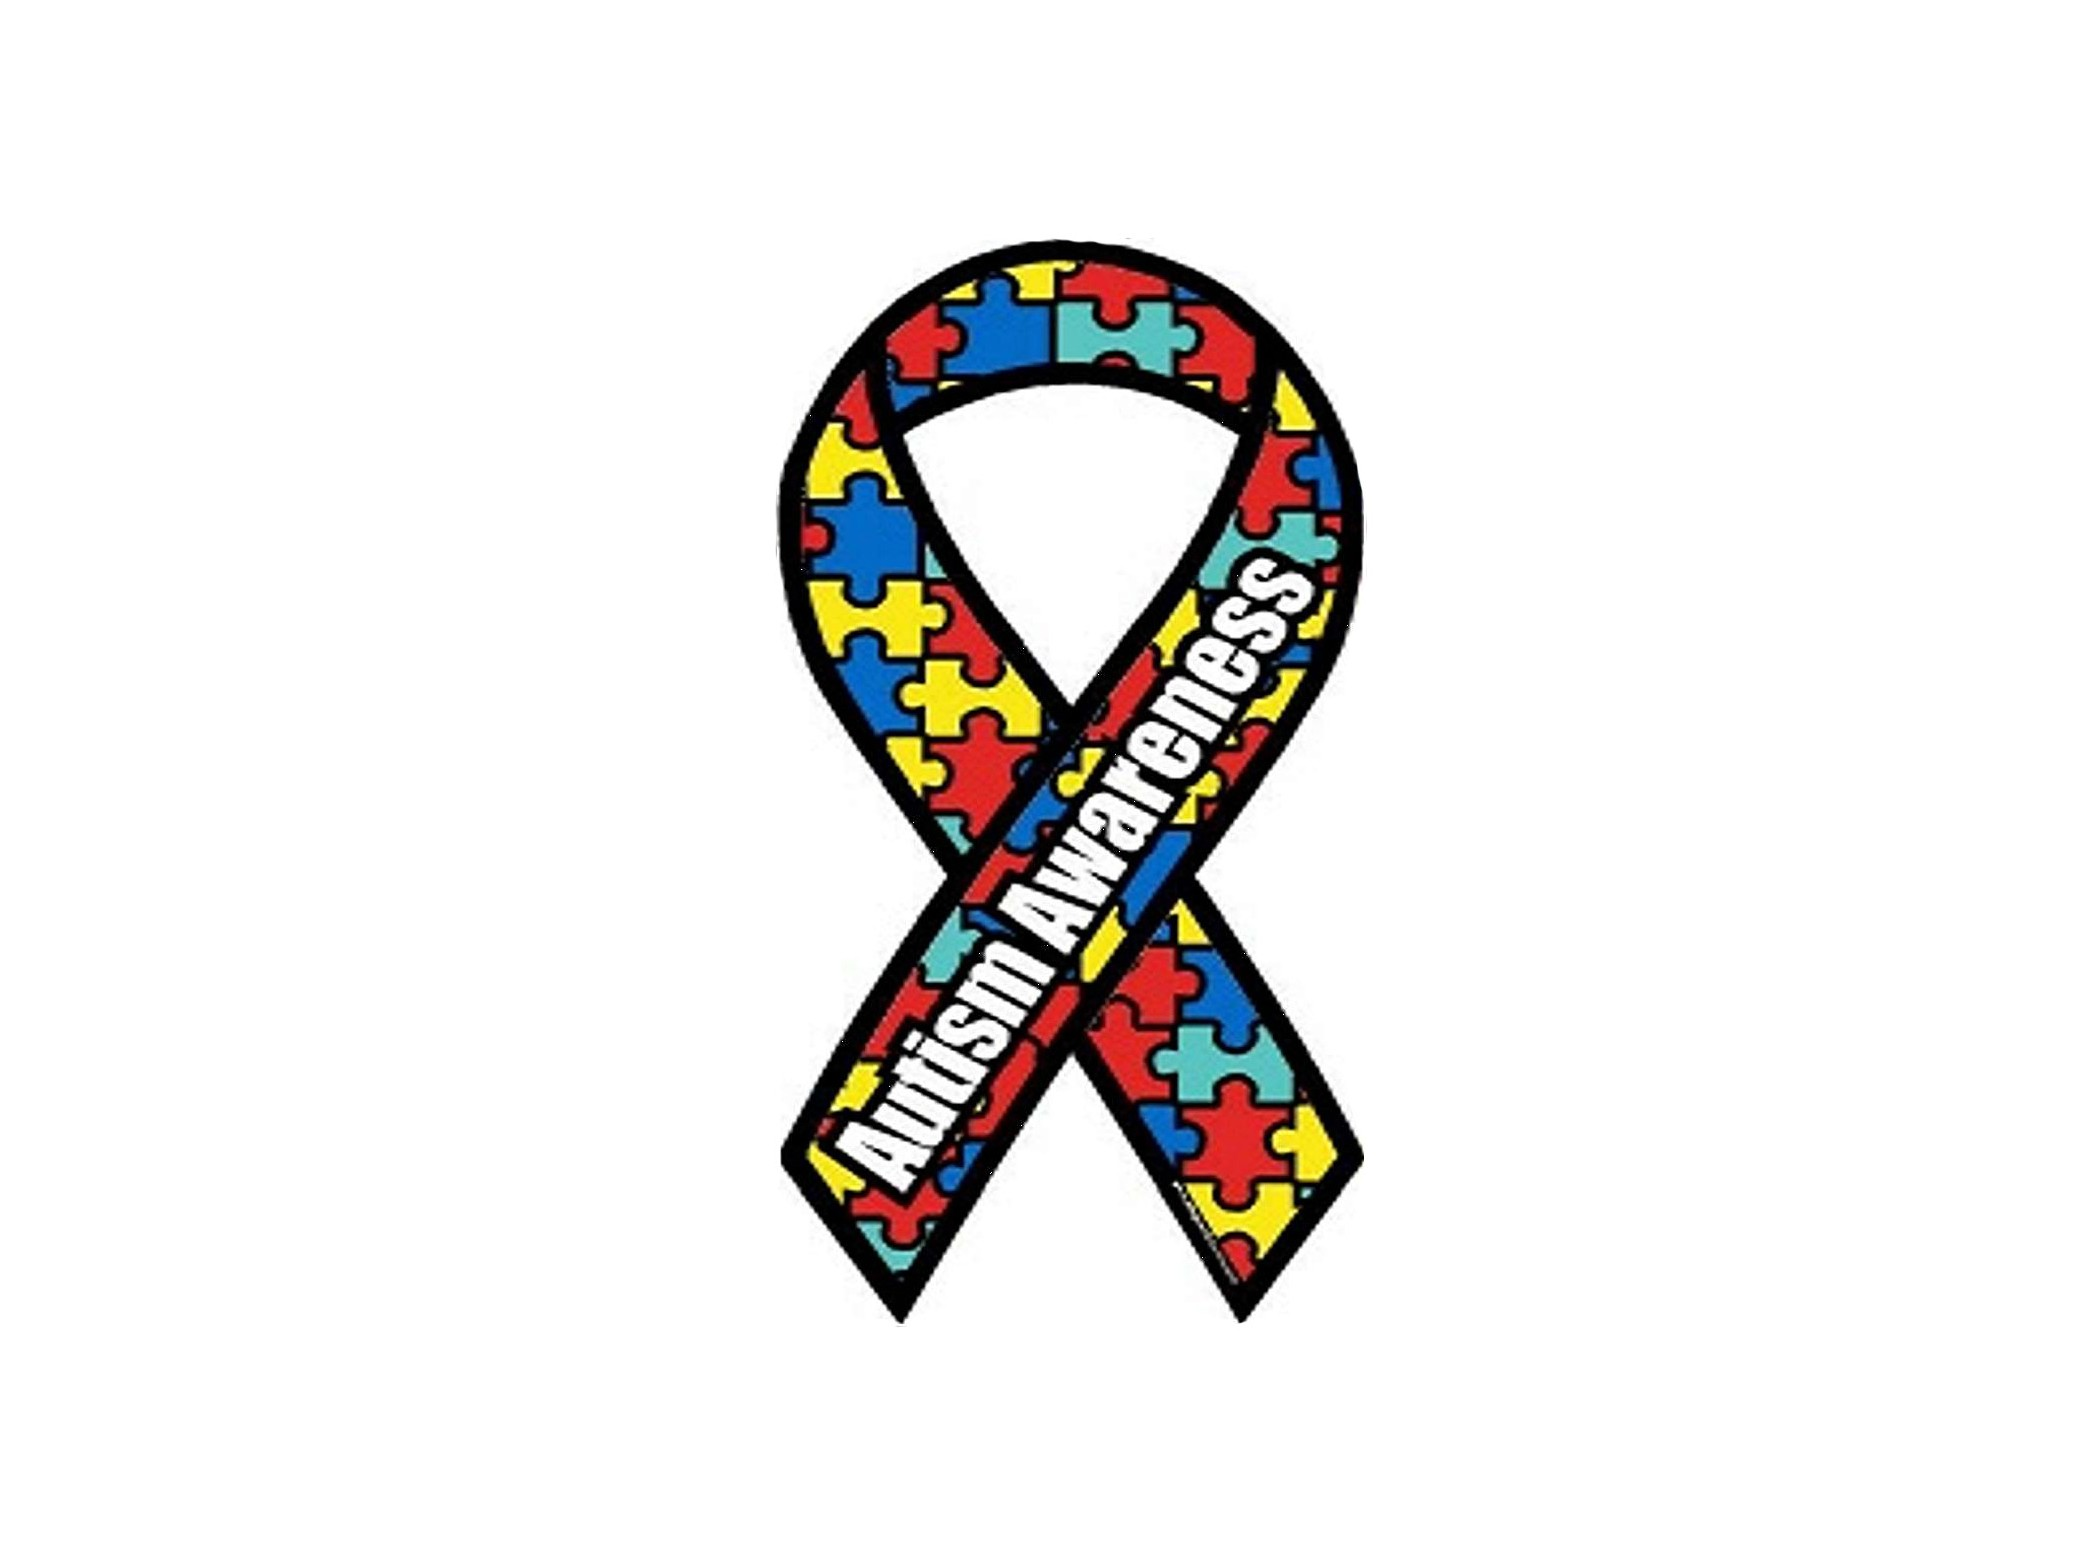 autism awareness lifedesigns rh lifedesignsinc org autism awareness day clipart autism awareness day clipart